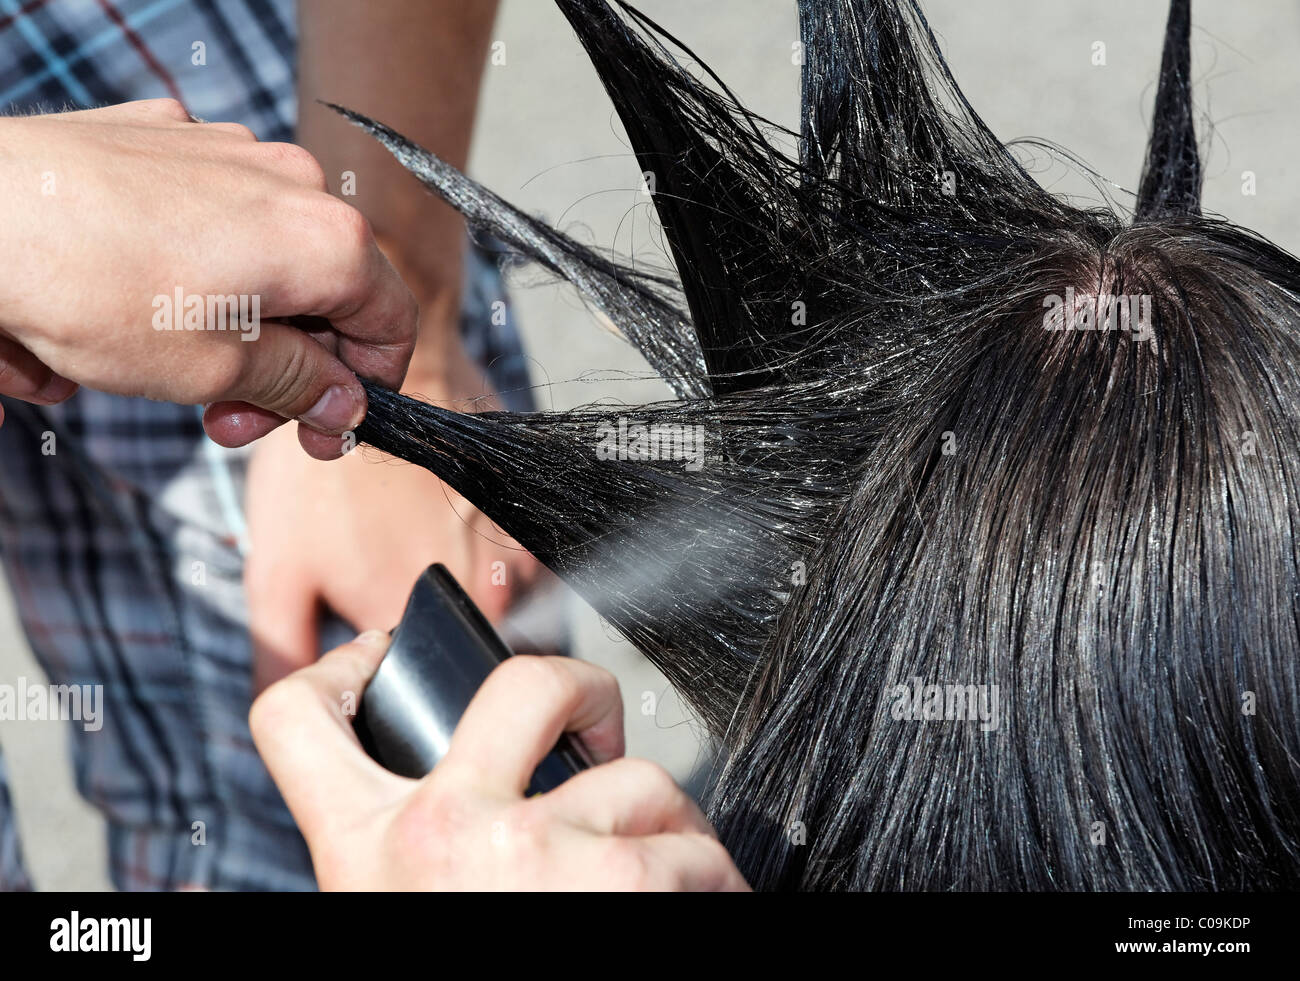 Hands spraying and styling hair shaped into tips of a teenager, hairstyle with spikes like a cockscomb, mohawk, - Stock Image